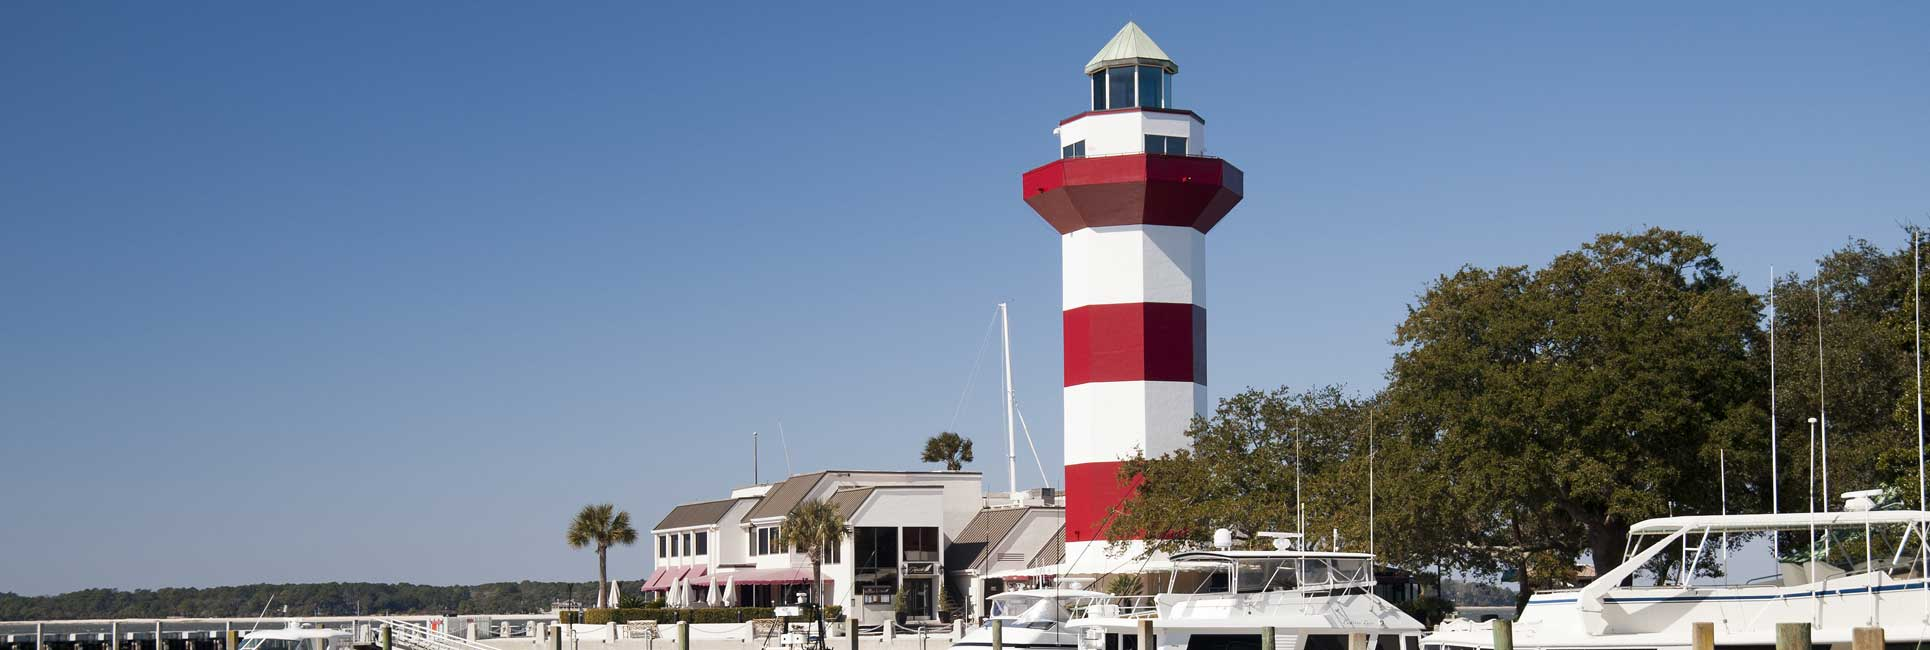 The iconic red and while lighthouse over looking the bay in Hilton Head, SC